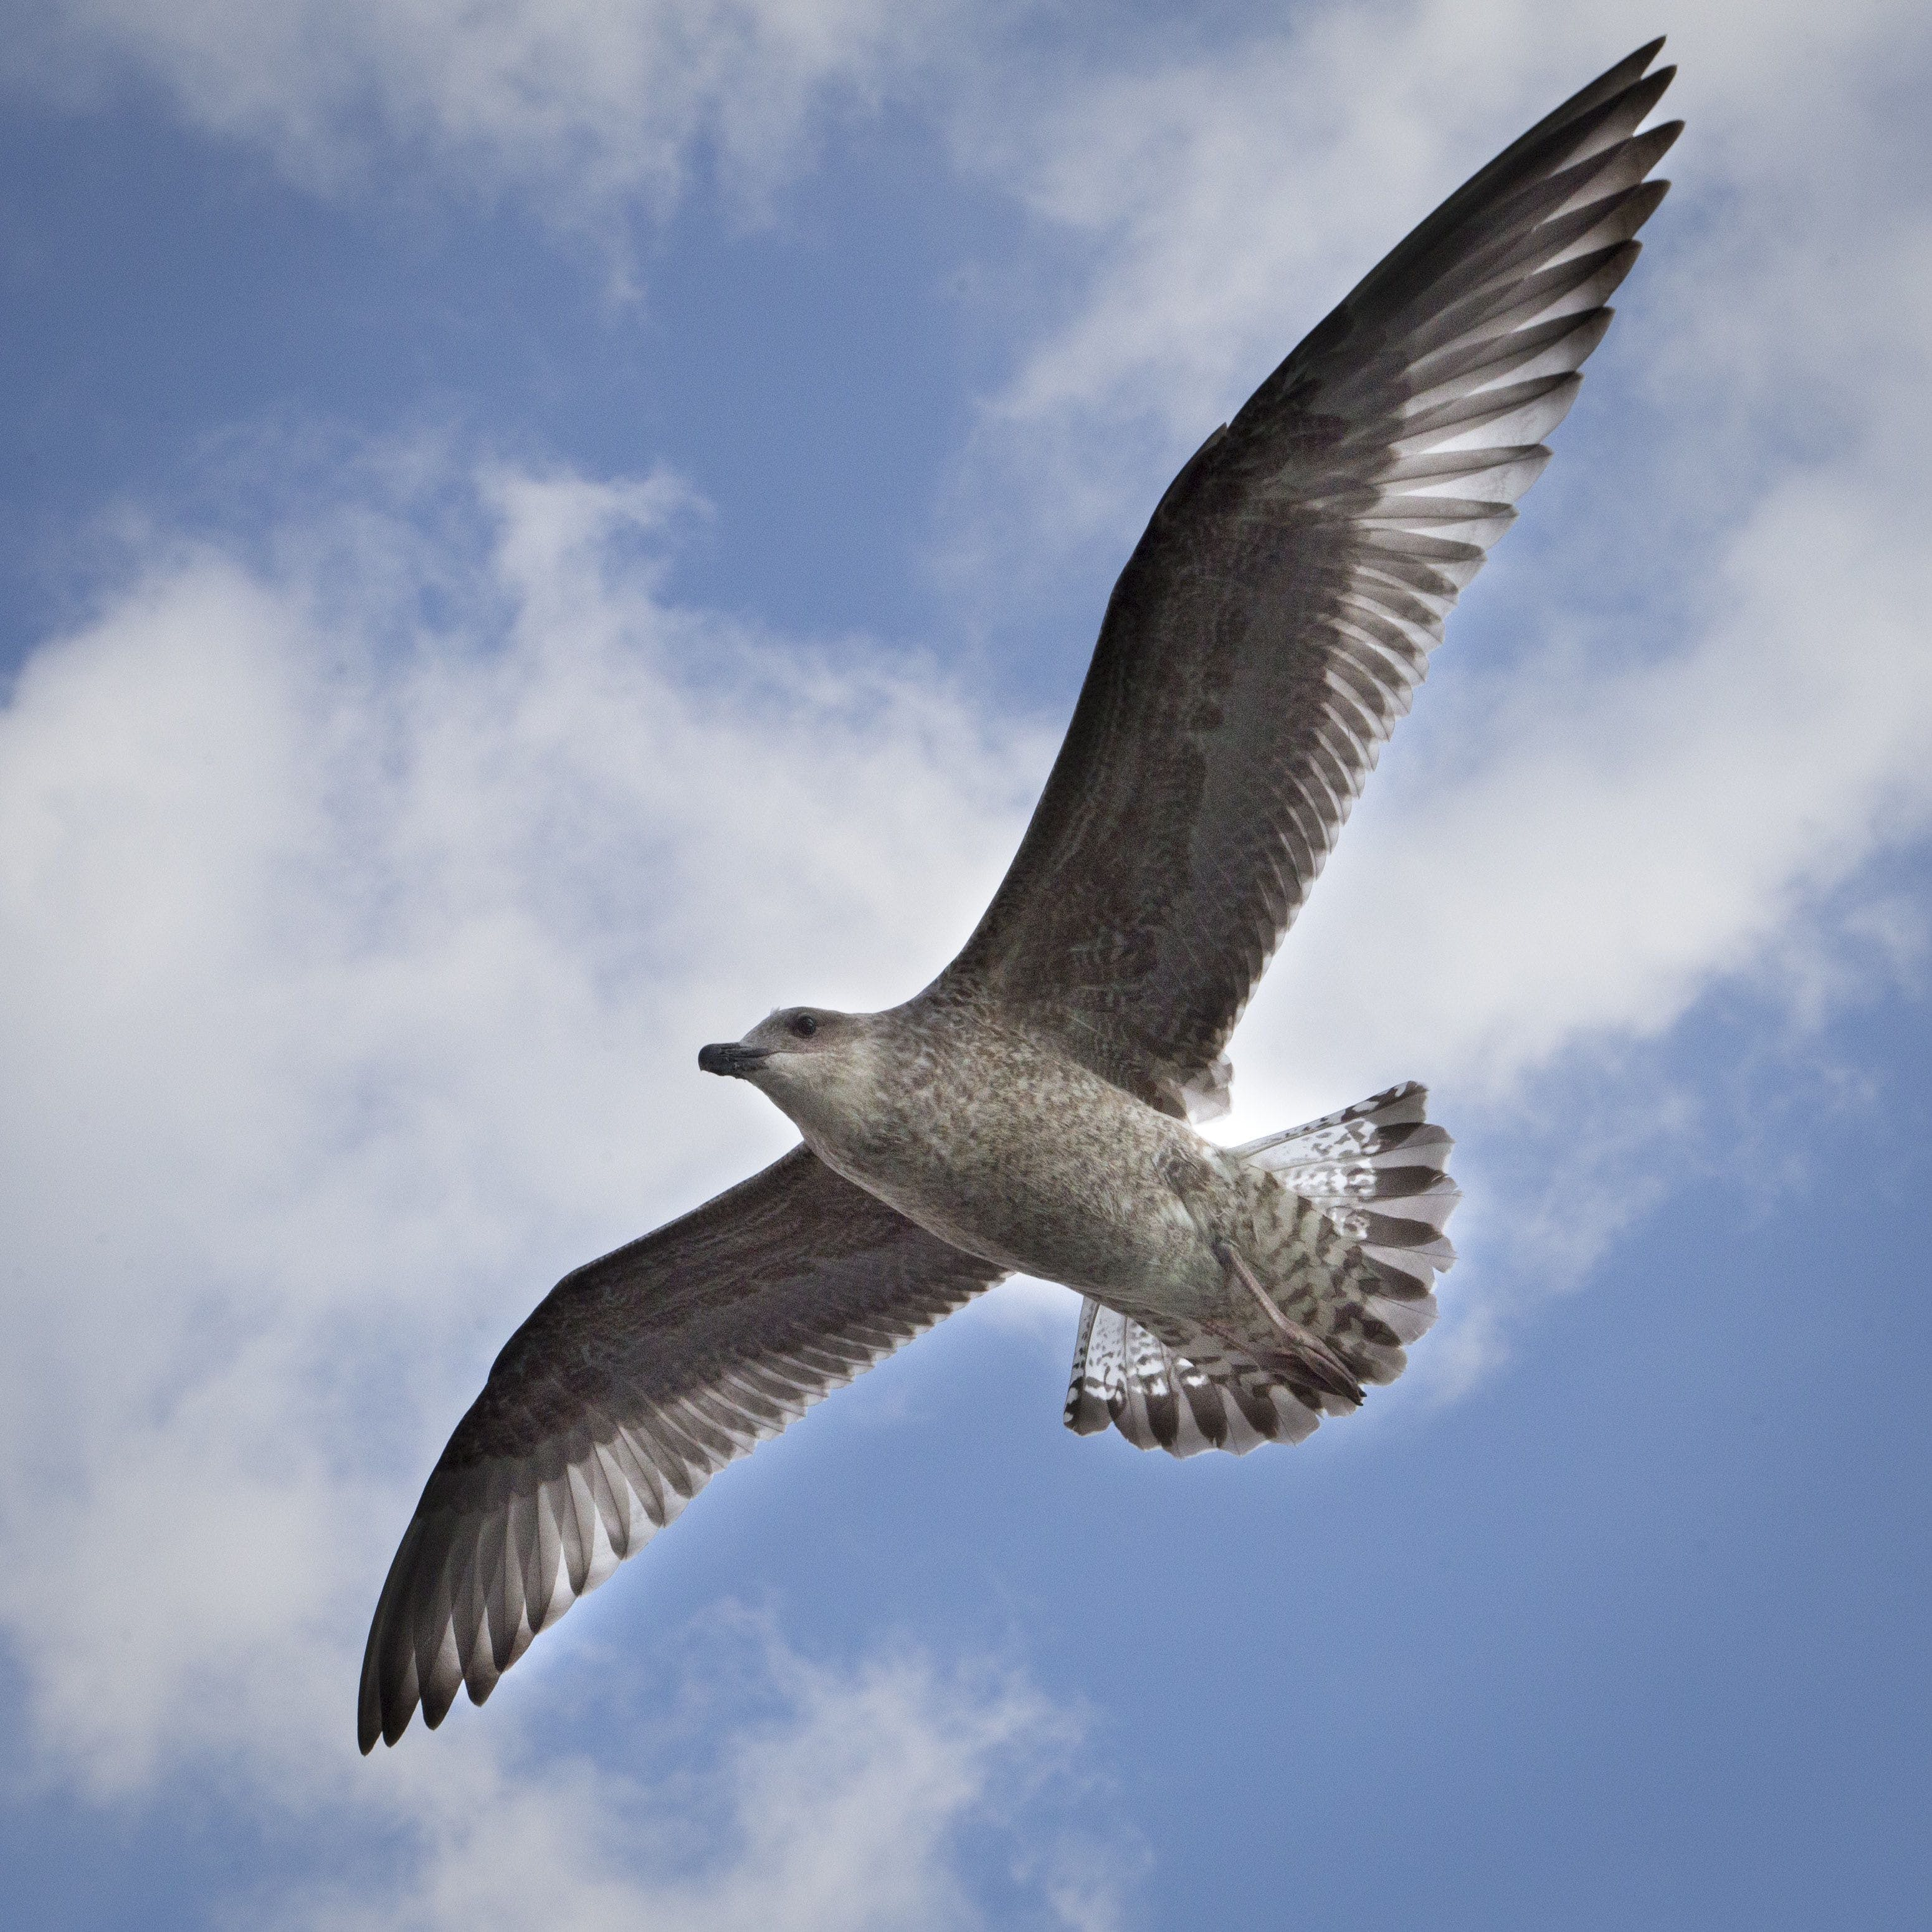 Low Angle Photography of Brown Gull Flying